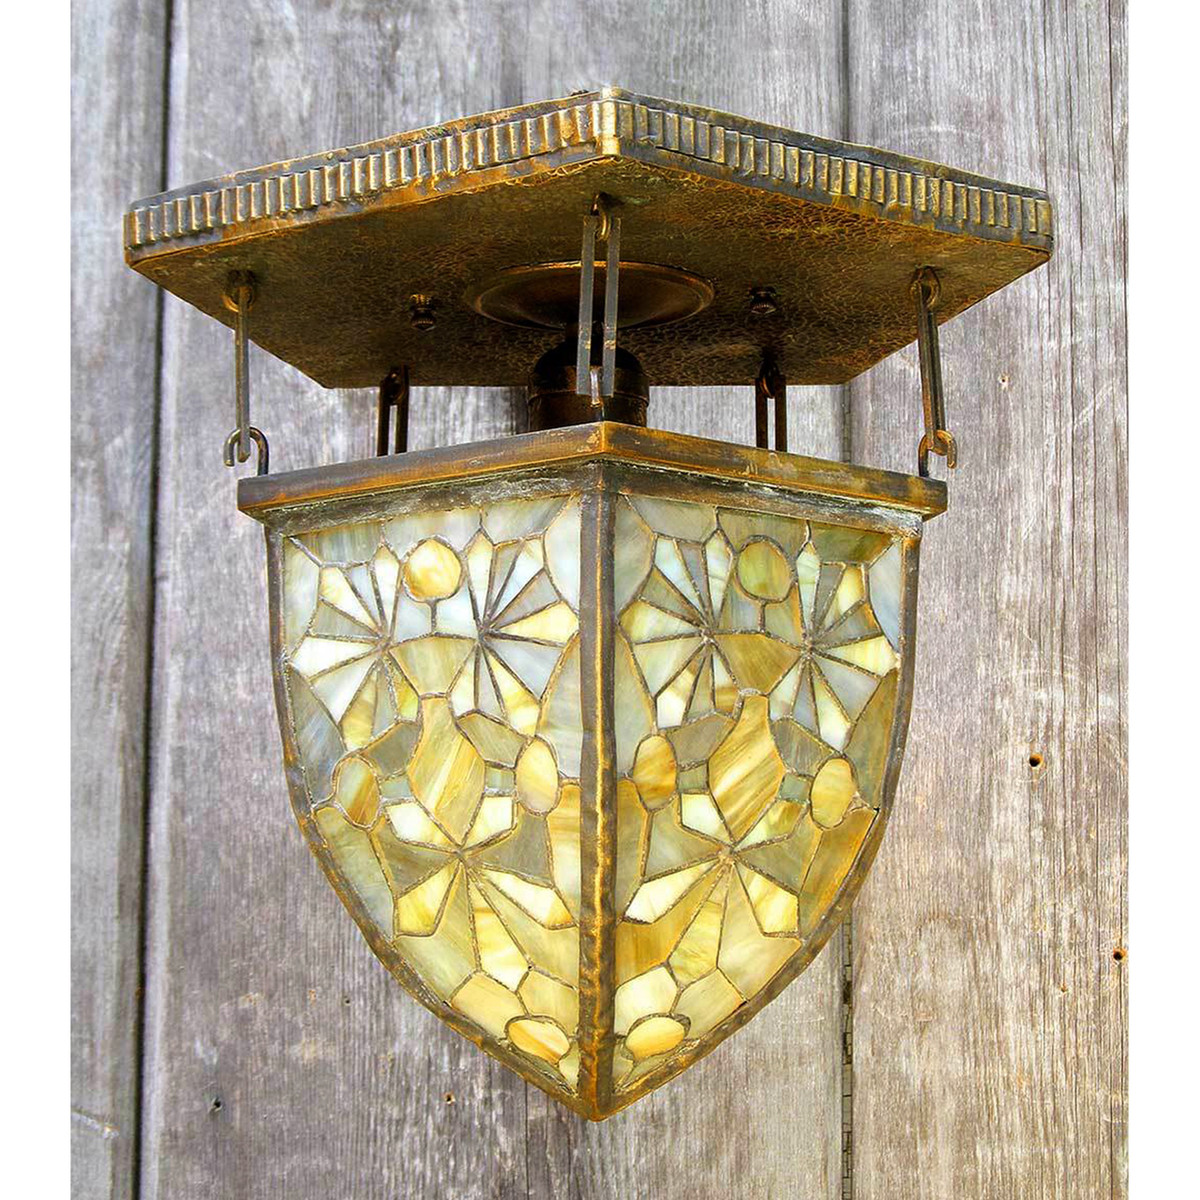 L12077 antique tiffany stained glass ceiling light fixture mozeypictures Choice Image